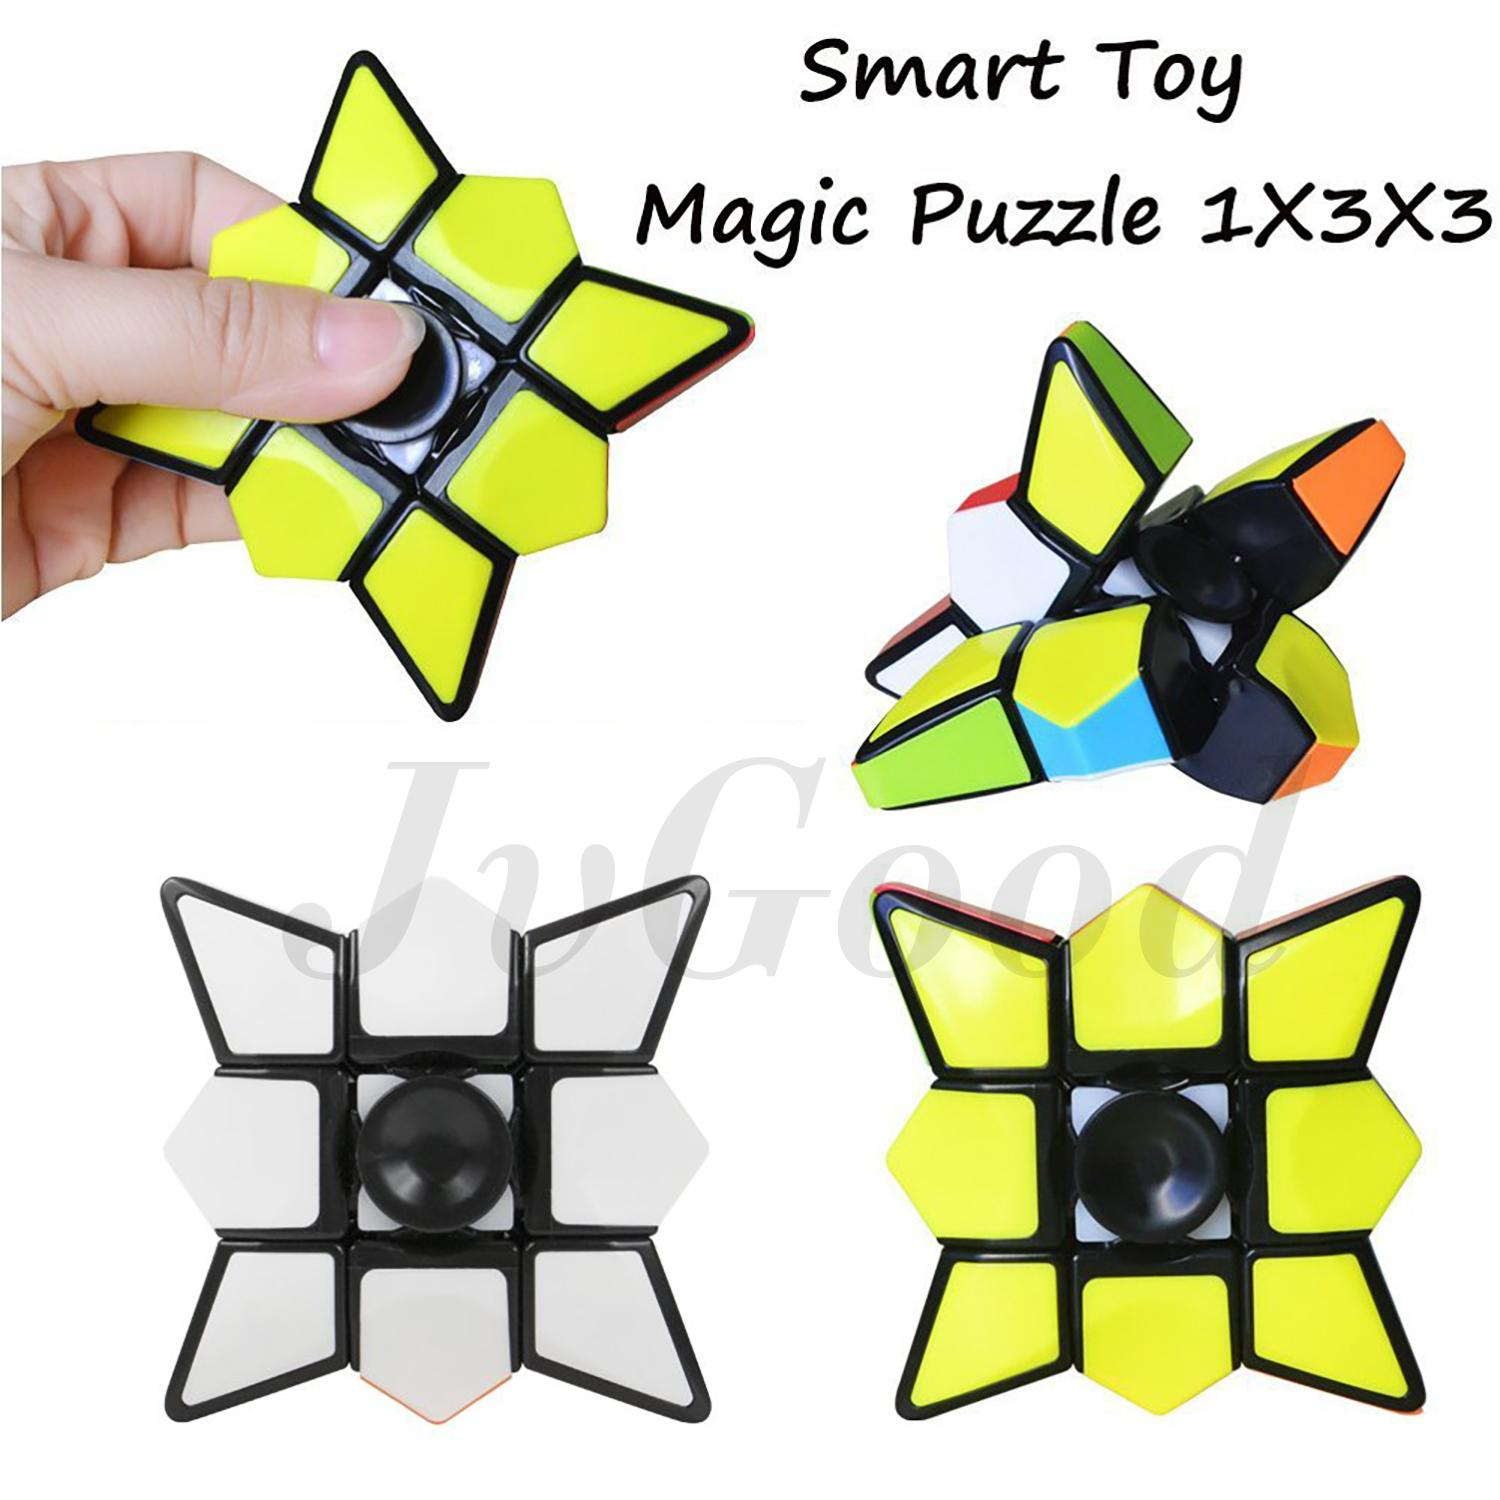 Detail Gambar JvGood Spinner Hand Toys Focus Games Magic Cube Puzzle Fidget Spinners Fidget Toy Spinner Cube Brain Teasers Stickerless Smooth 1X3X3 Smart ...